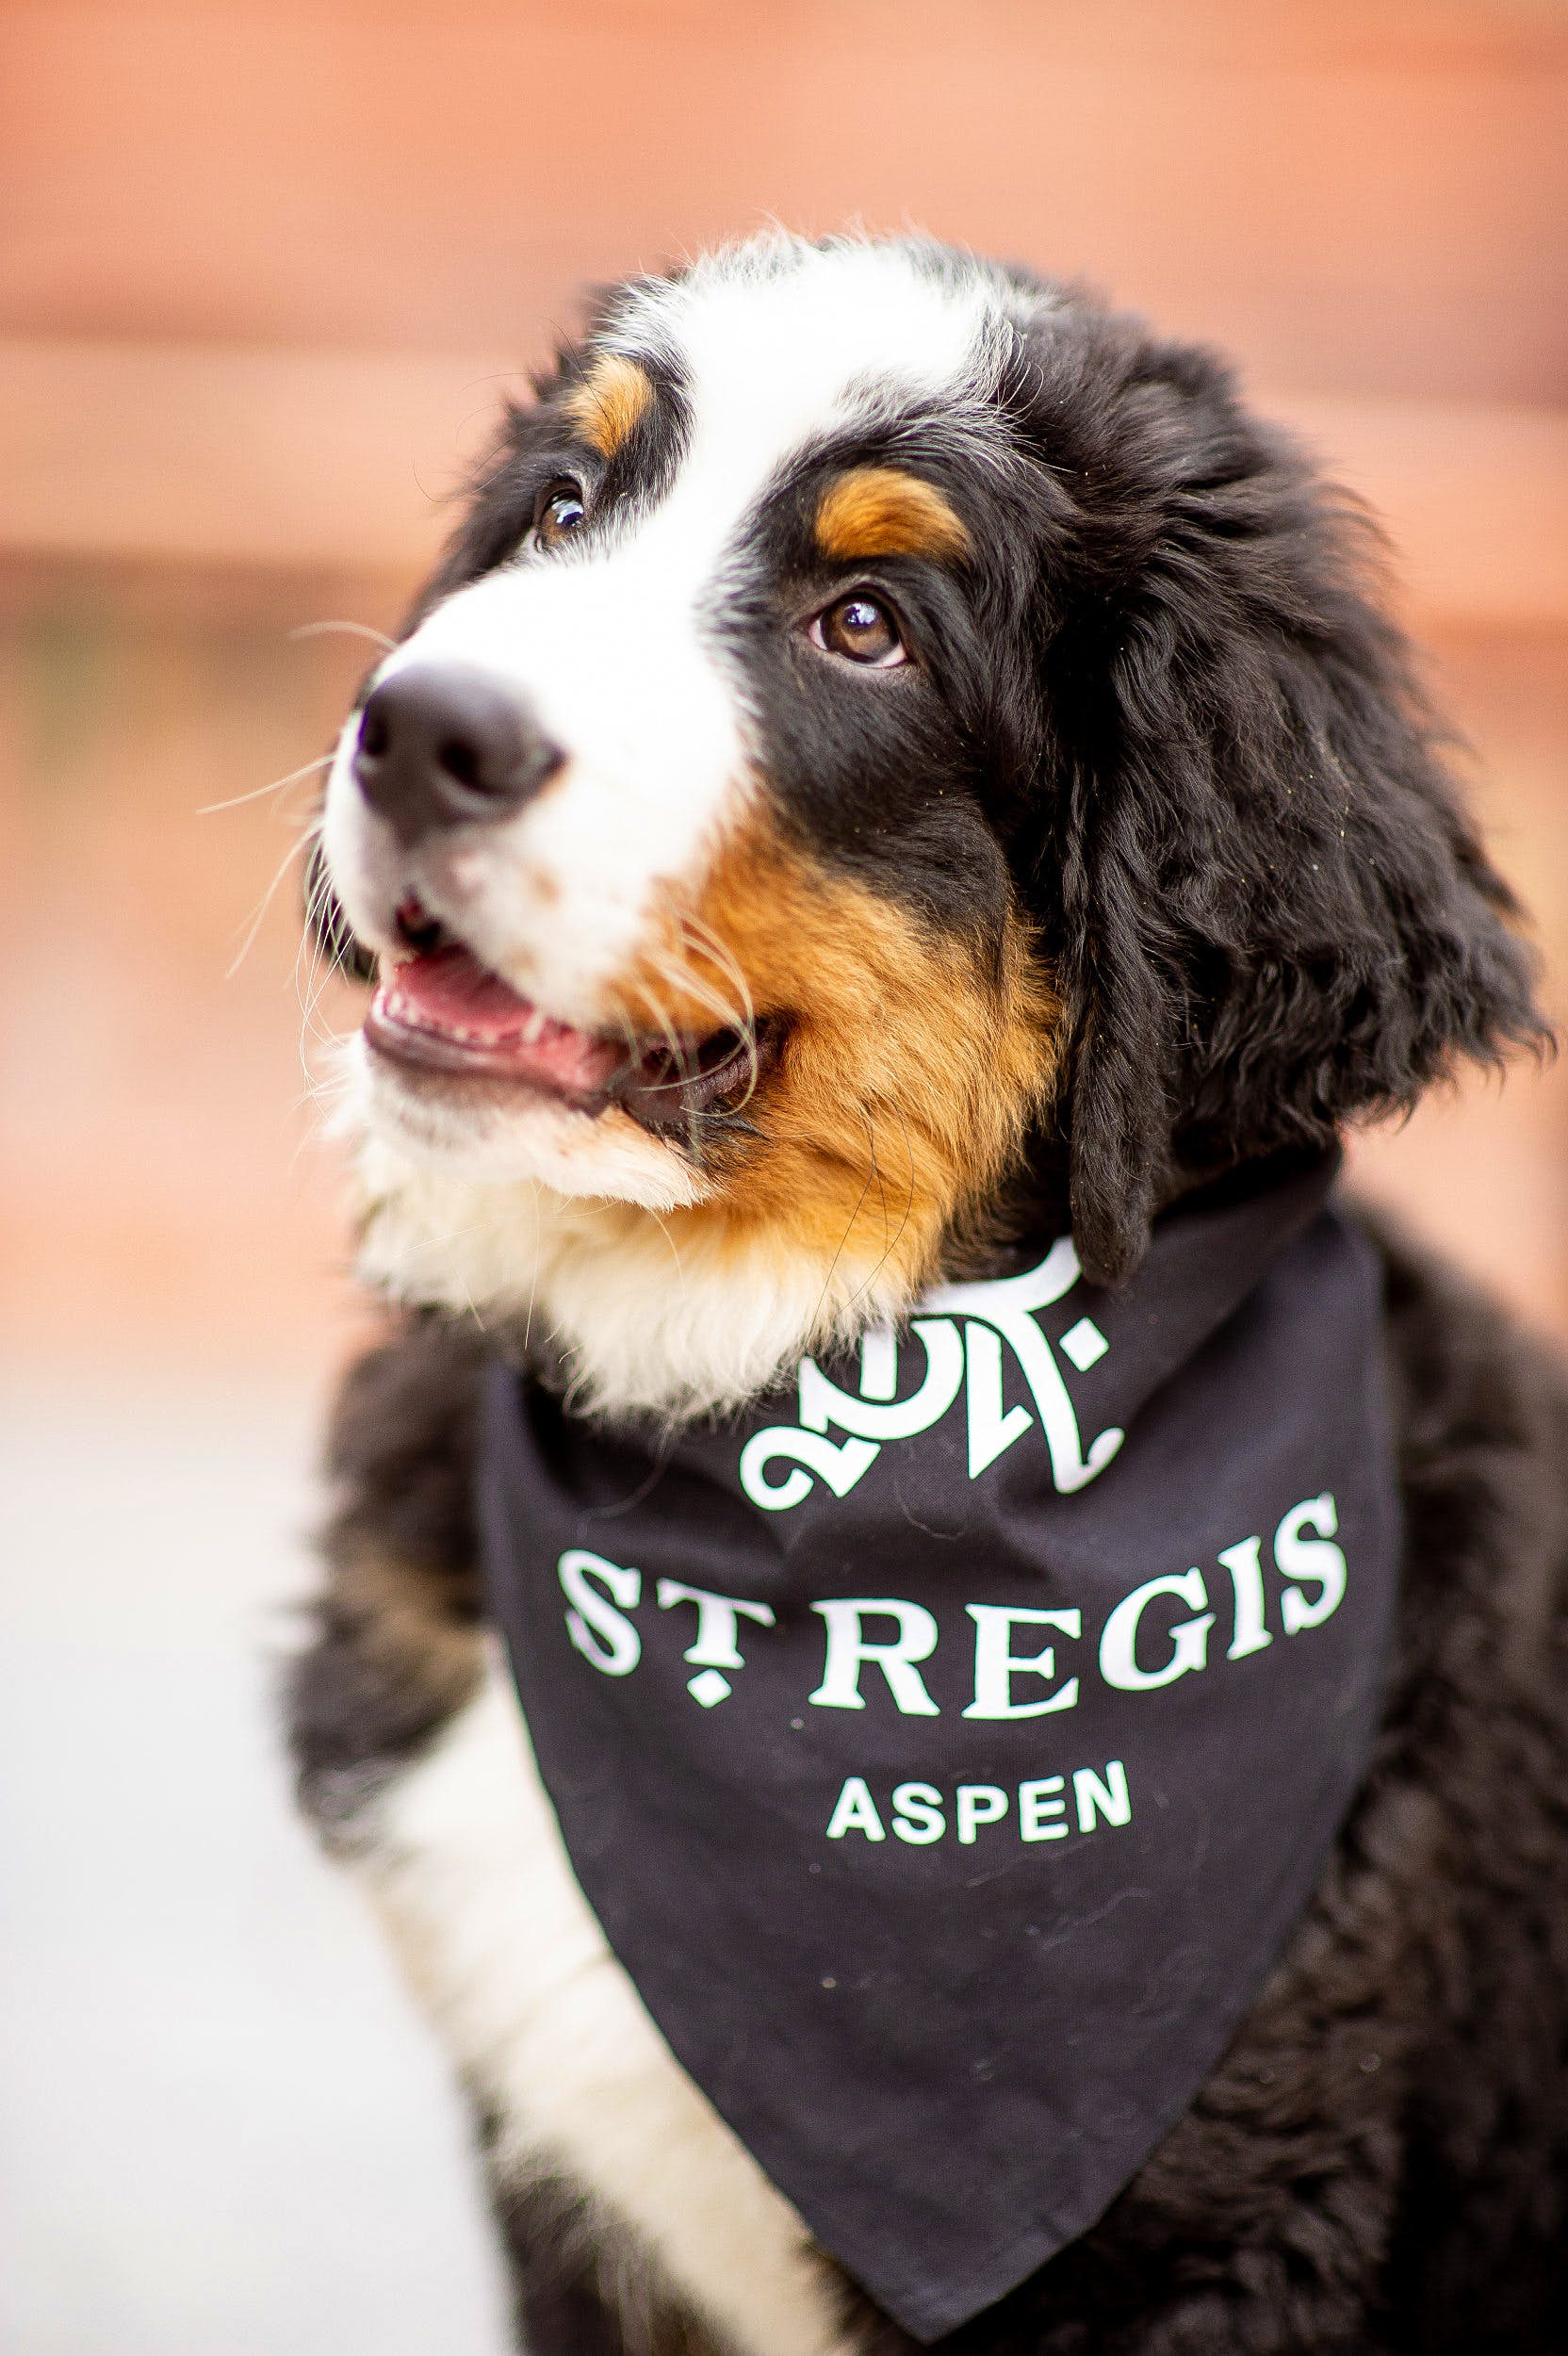 An Adorable Dog Named Kitty Will Greet You At This Aspen